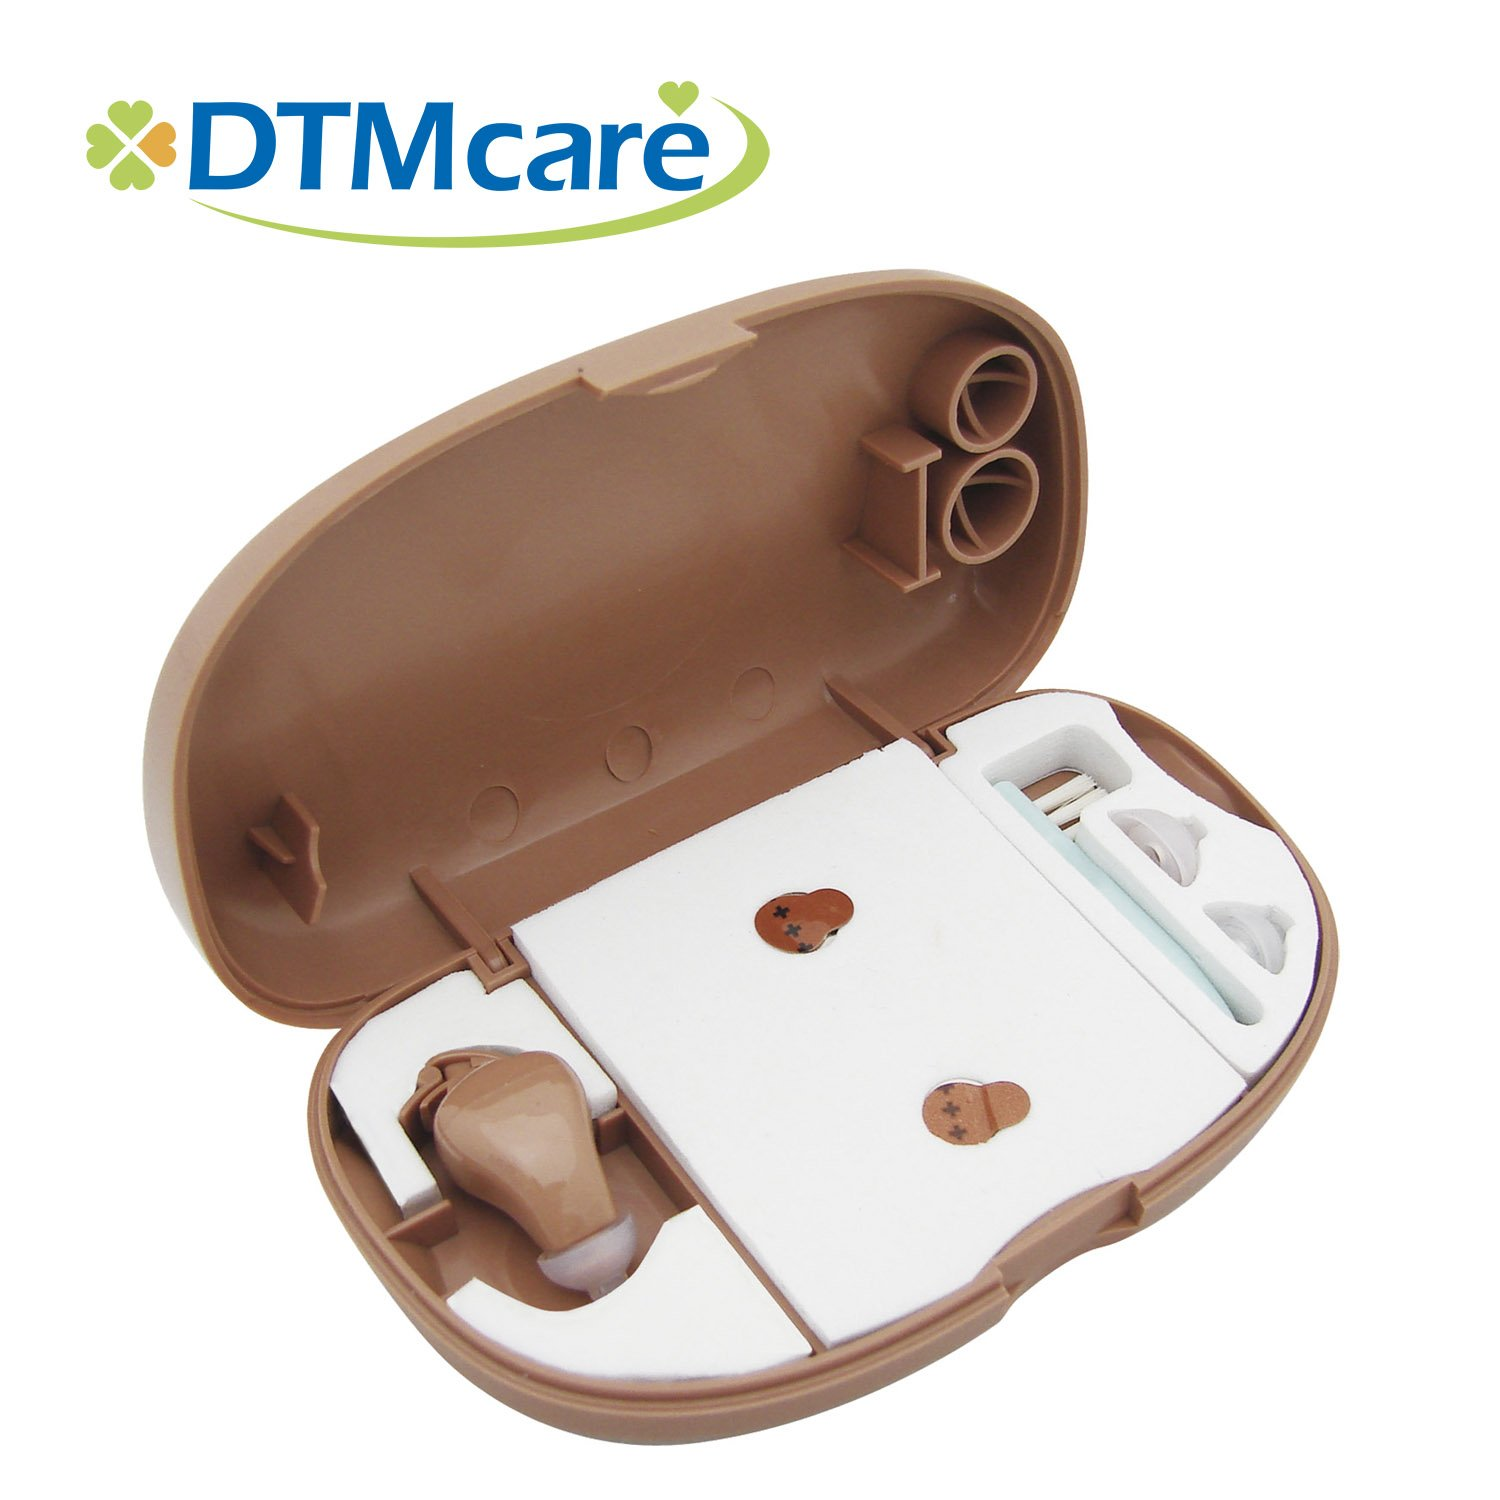 Canal Hearing Amplifier-Battery Operated(312 / PR41 button cell battery)-Mini Size-Fit Both Ears-FDA Registered/CE Medical Approved